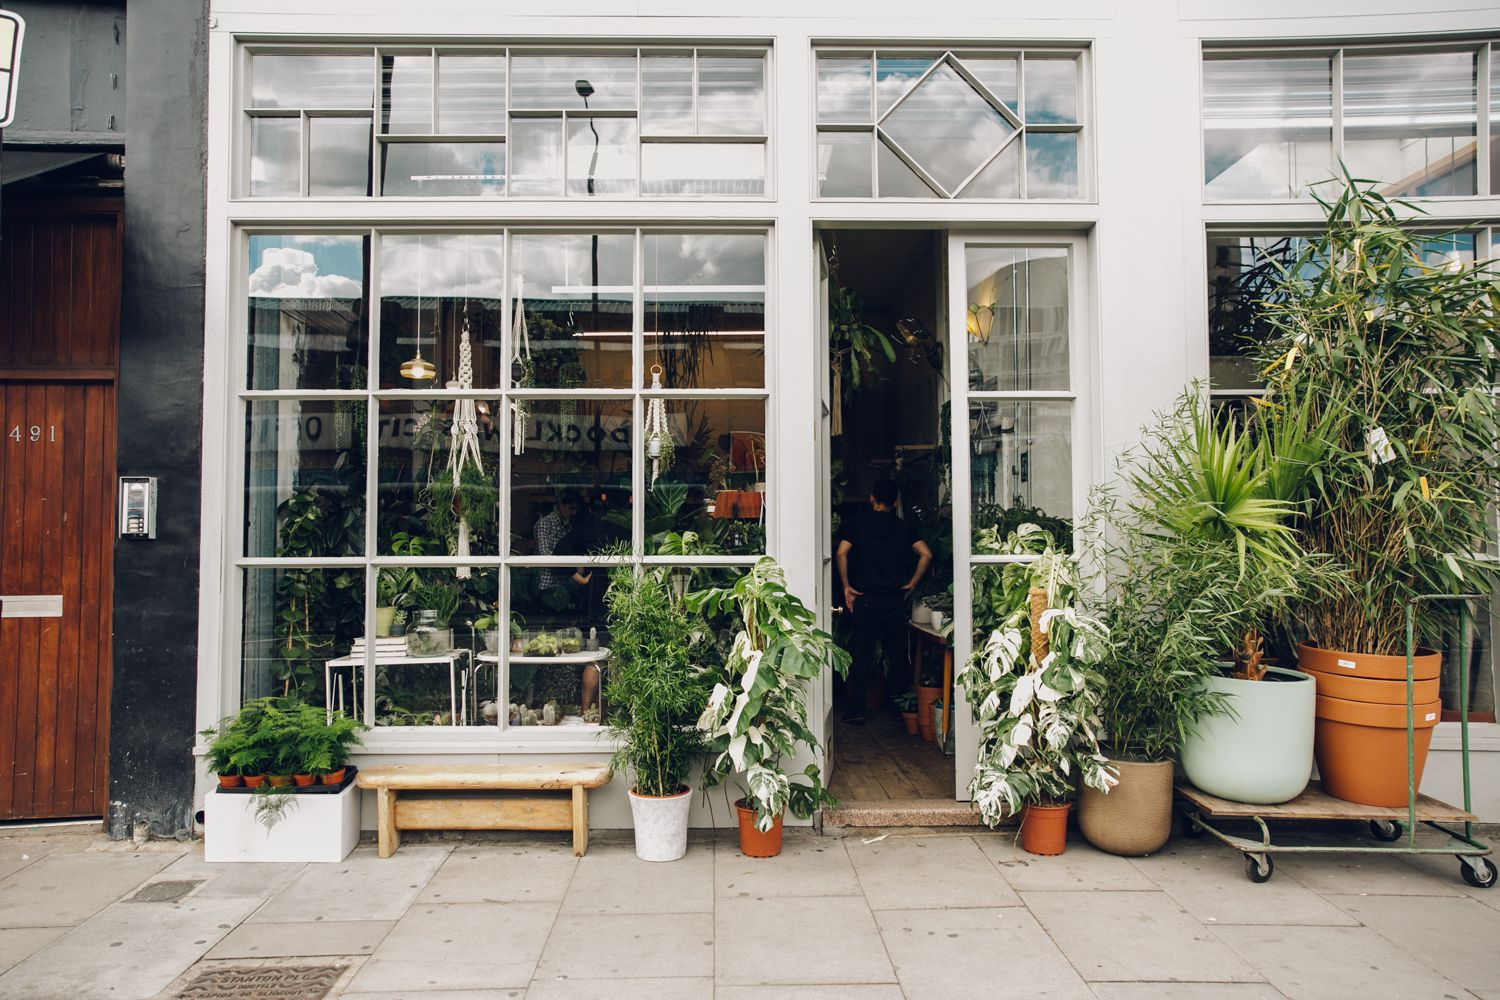 Conservatory Archives : London — Haarkon | Lifestyle and Travel Blog.